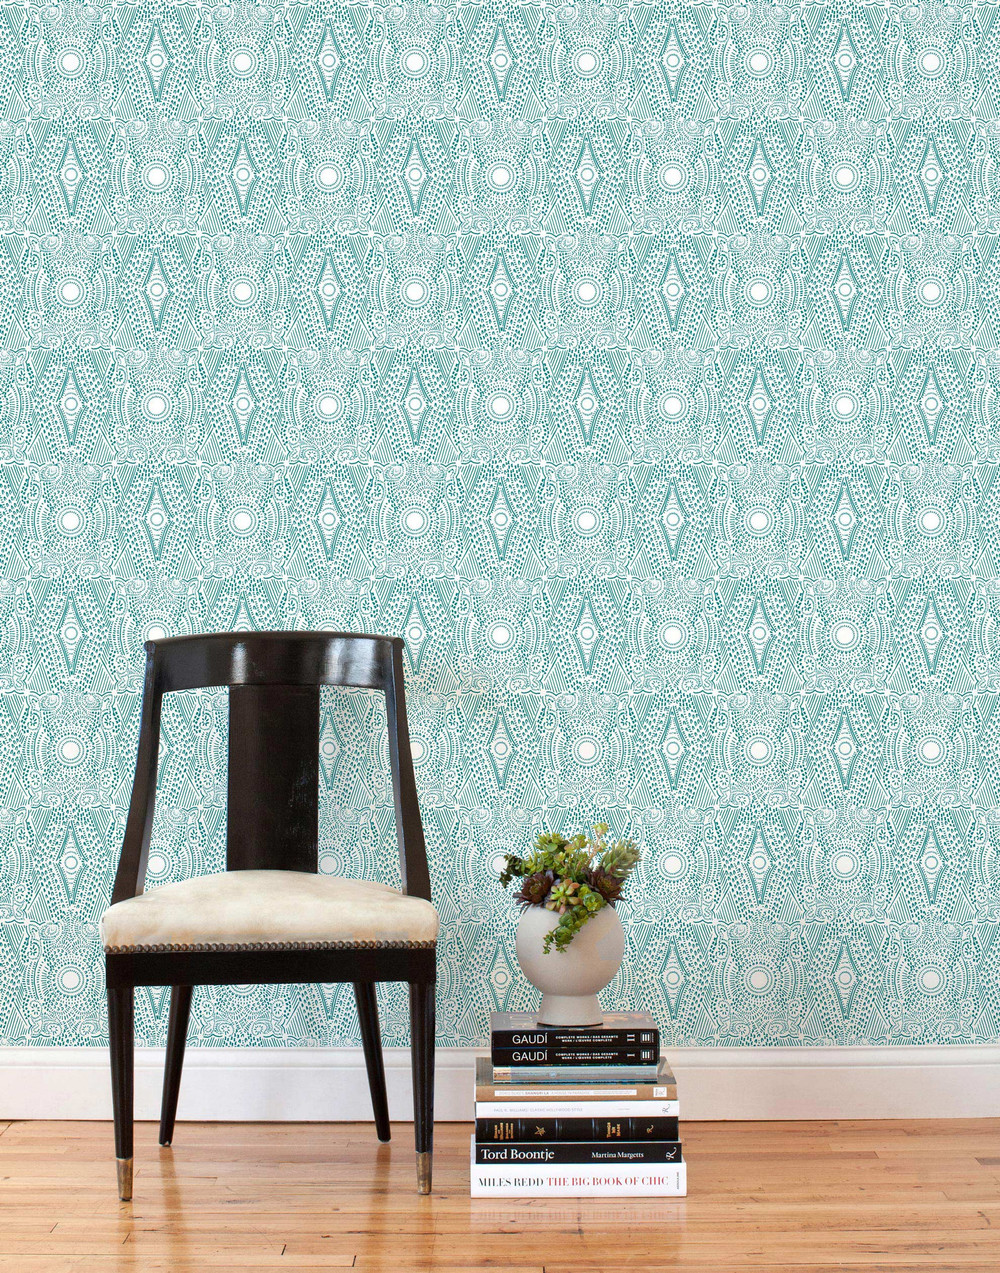 ReUsable wallpaper tiles by Hygge and West are removable so you can take them when you leave your rental or enjoy them for a long time. Photo courtesy of Hygge  and West.